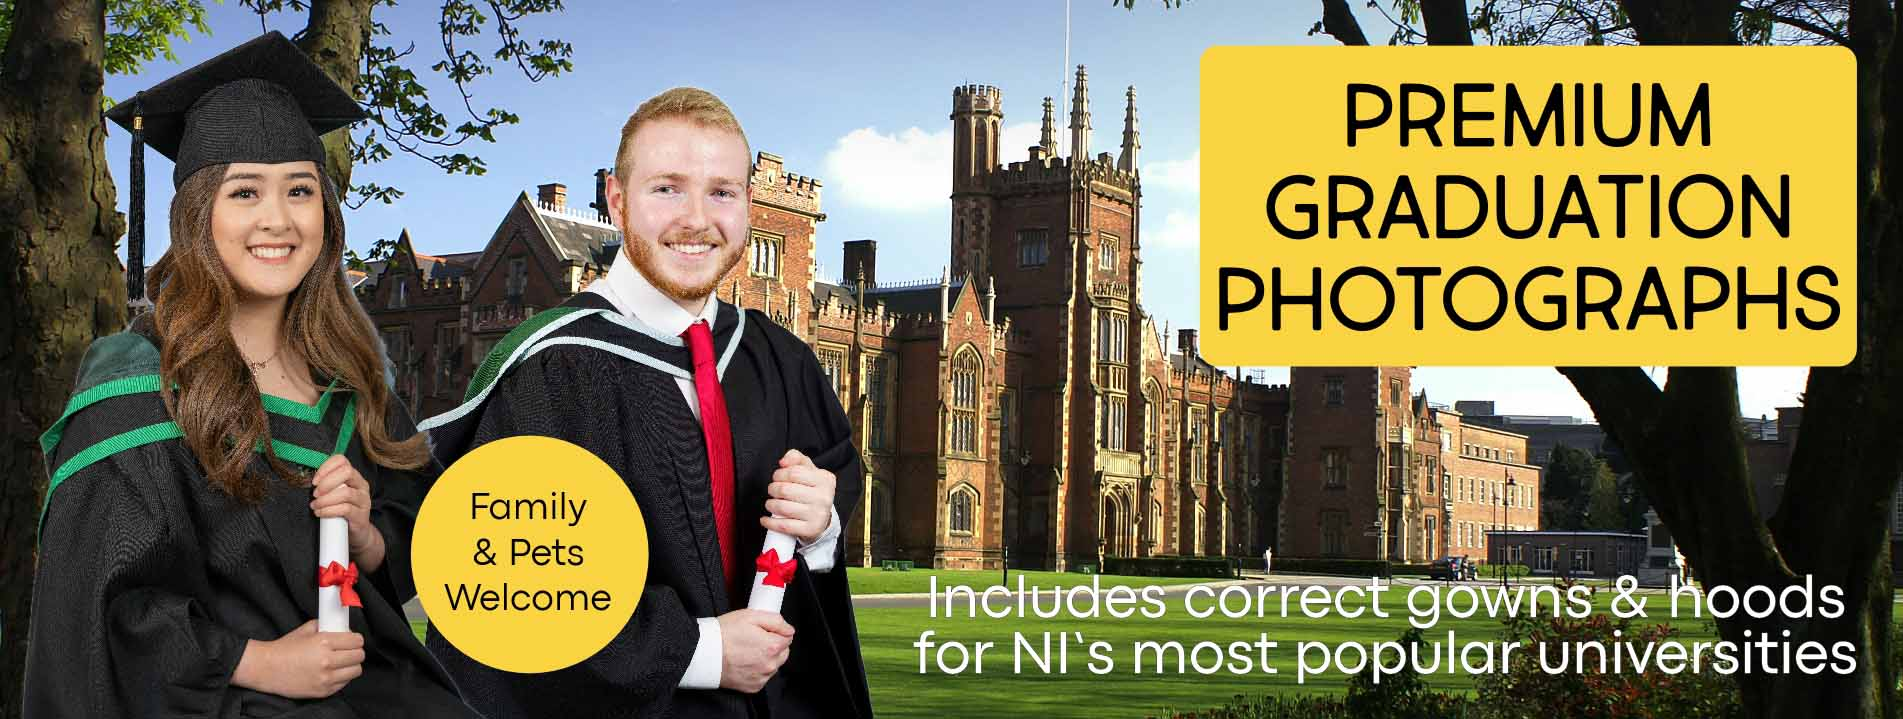 Official-style University Graduation Photographs without the hassle